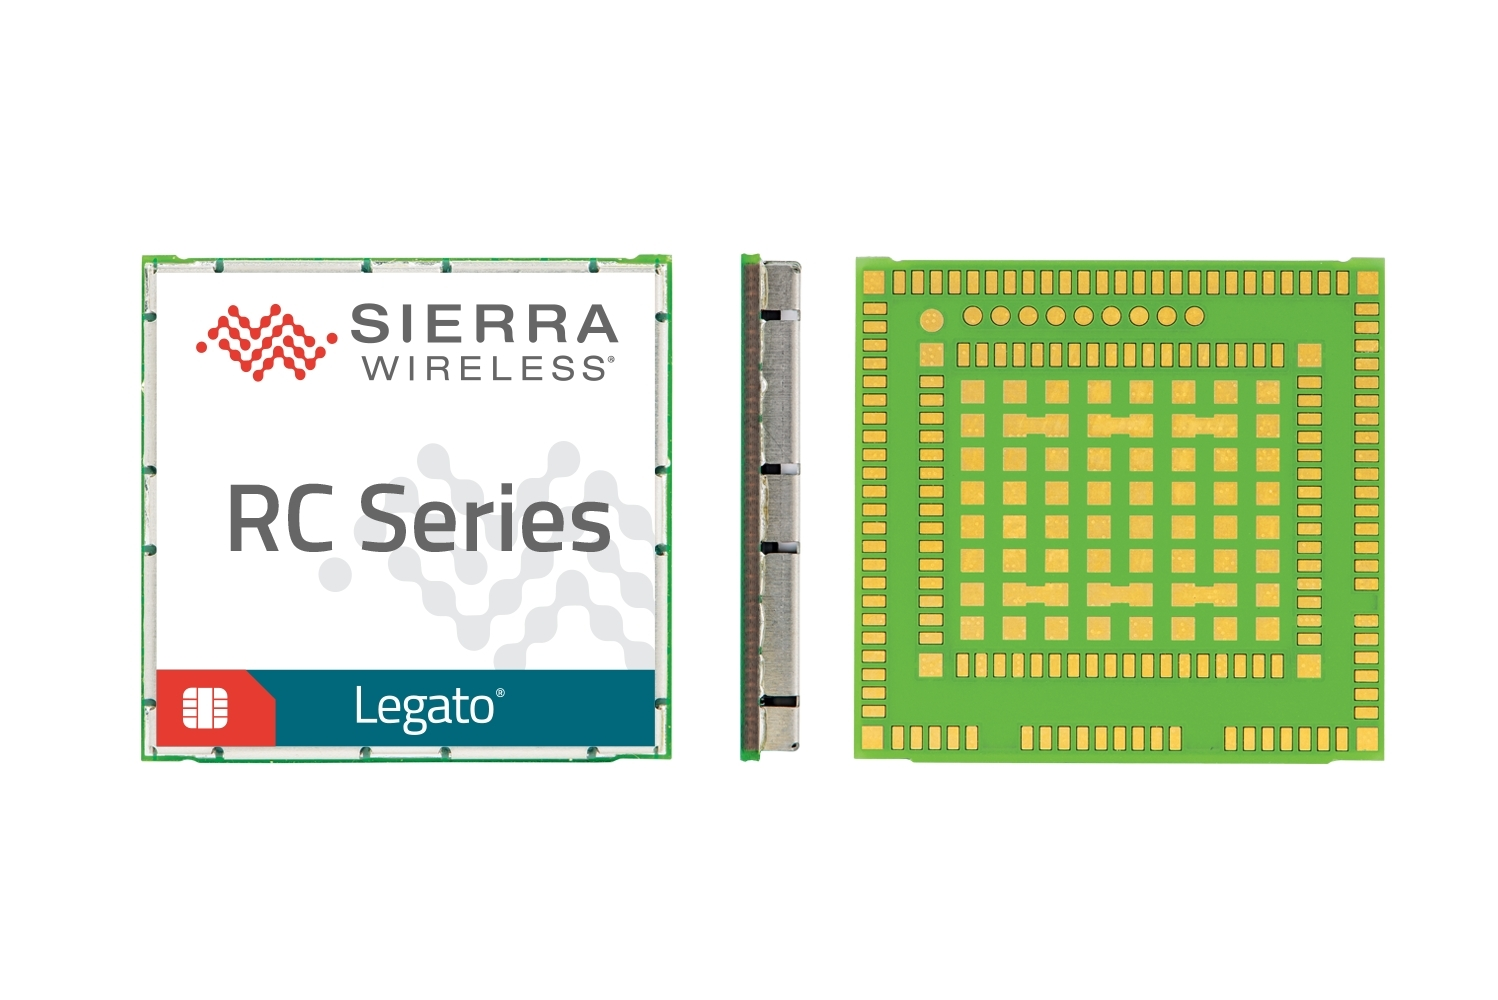 sierra-wireless-launches-ready-to-connect-rc-series-of-modules-to-simplify-and-accelerate-iot-deployment